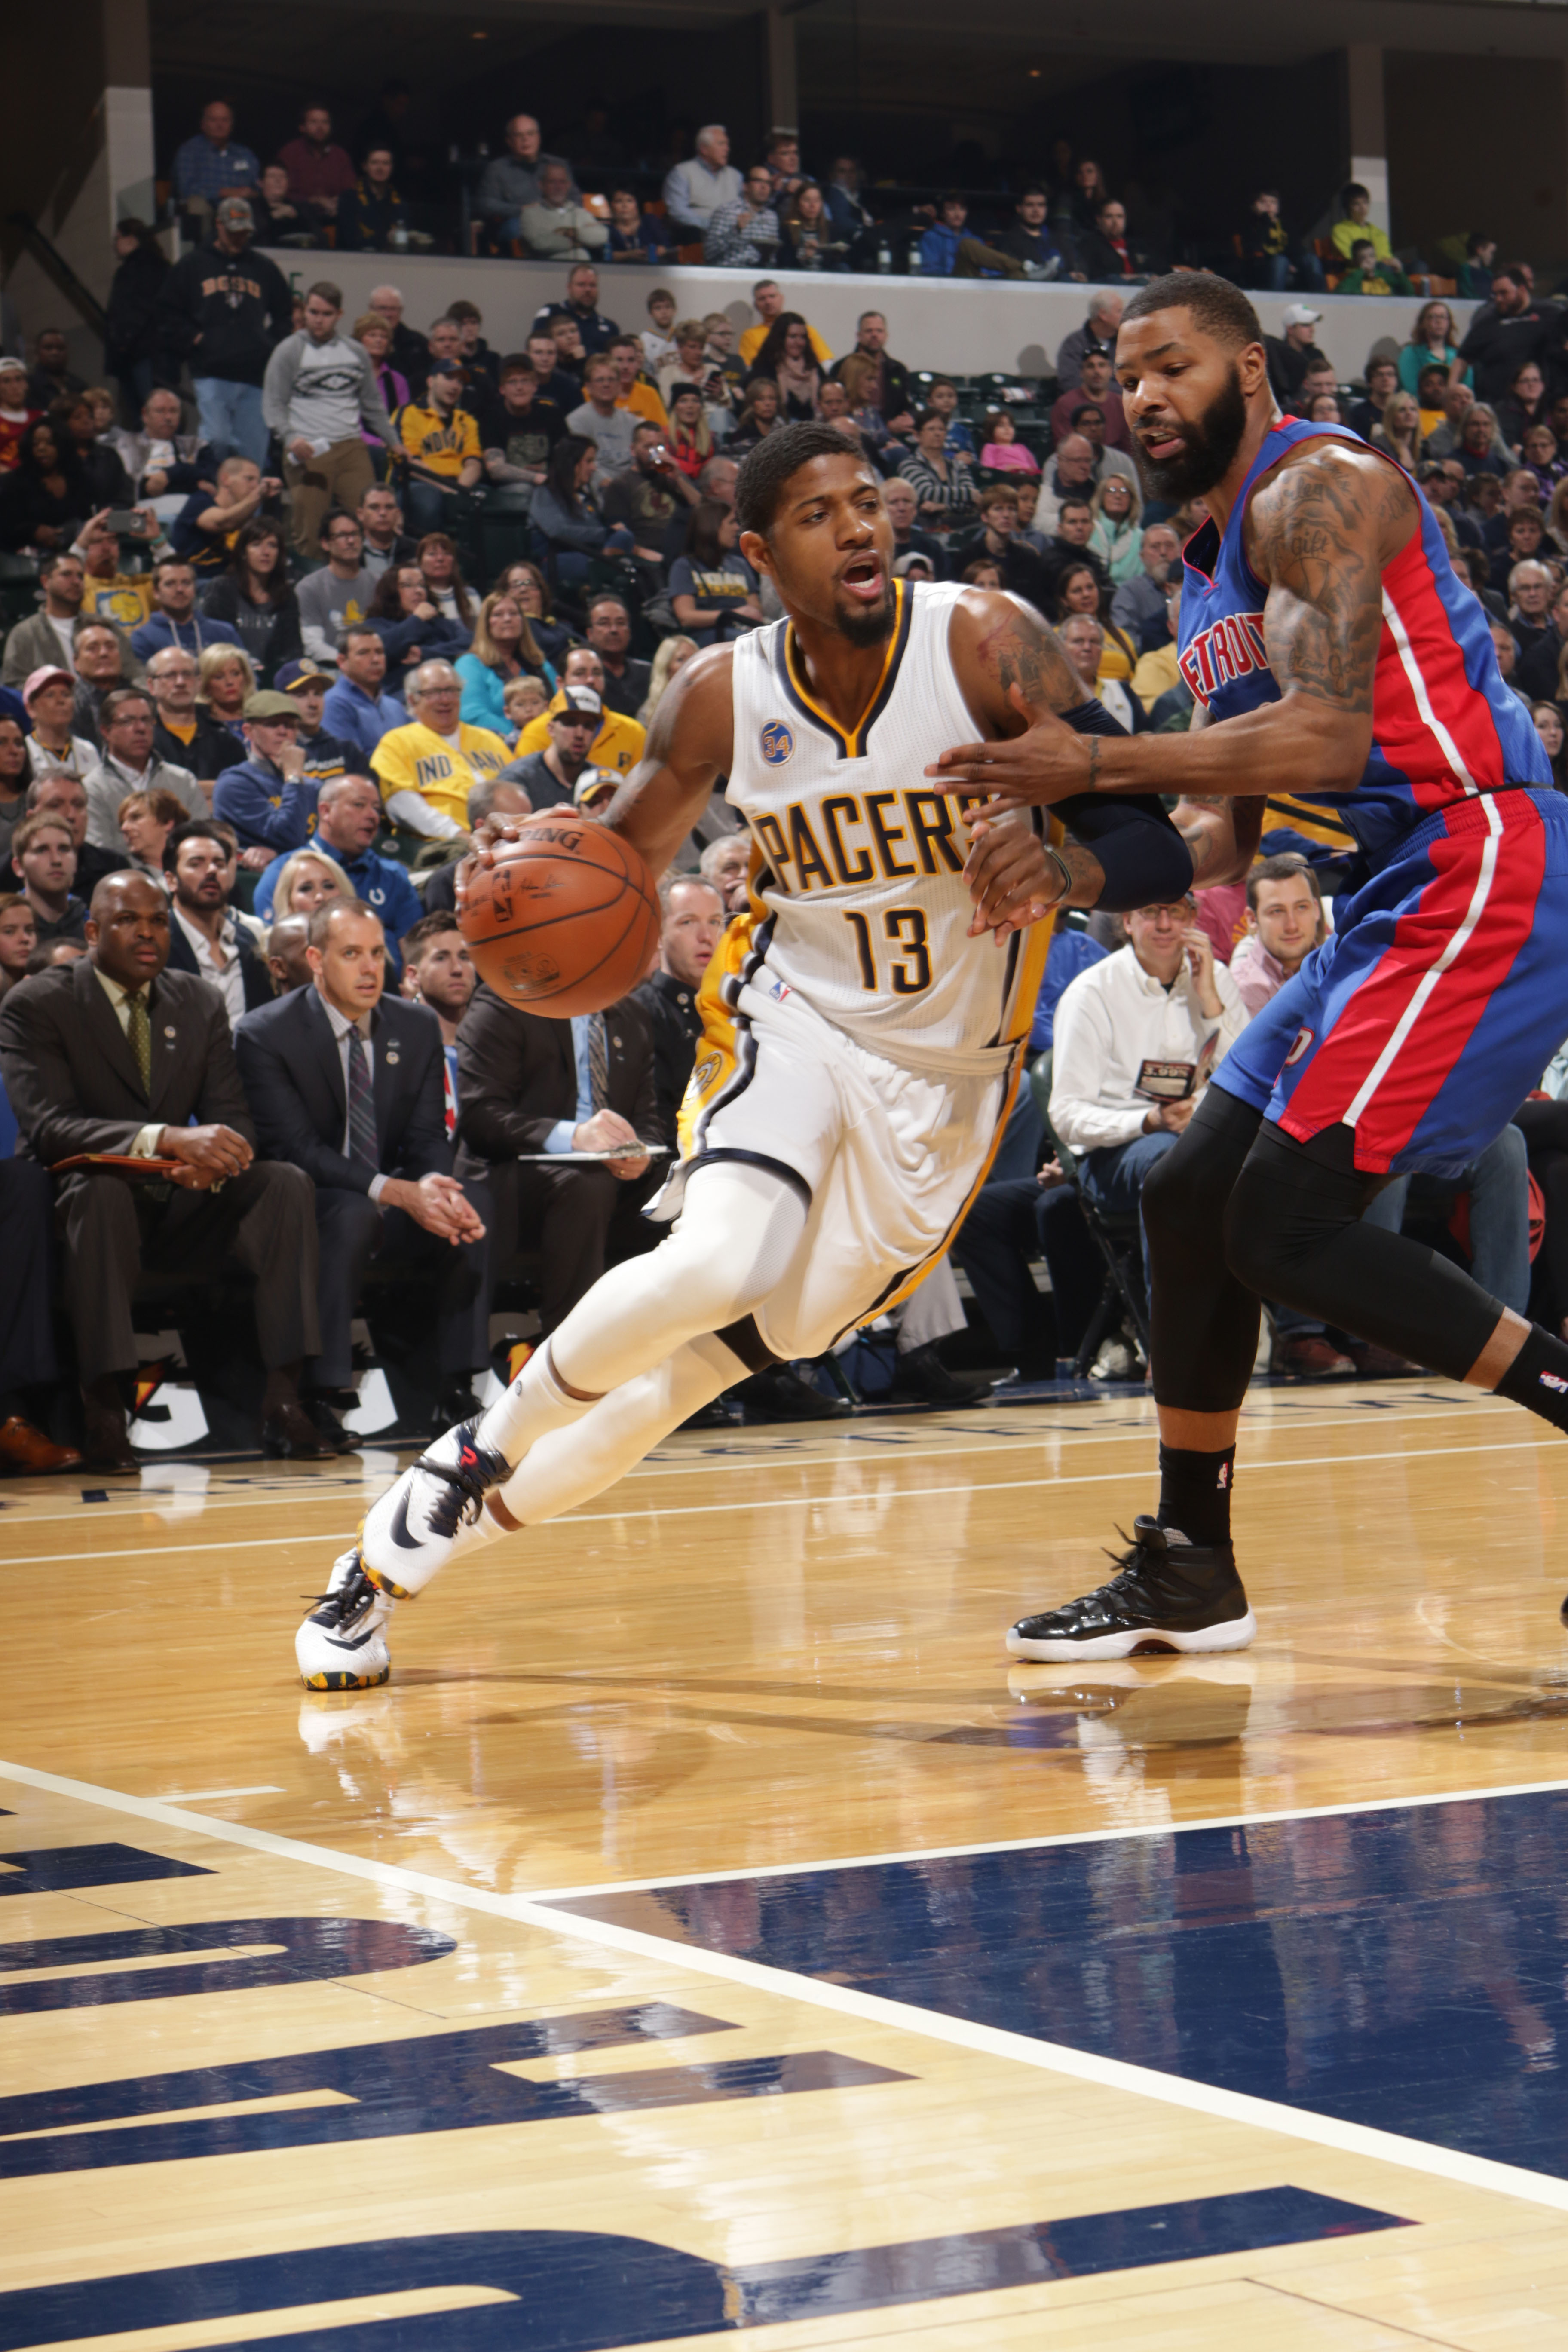 INDIANAPOLIS, IN - JANUARY 2: Paul George #13 of the Indiana Pacers handles the ball against the Detroit Pistons on January 2, 2016 at Bankers Life Fieldhouse in Indianapolis, Indiana. (Photo by Ron Hoskins/NBAE via Getty Images)